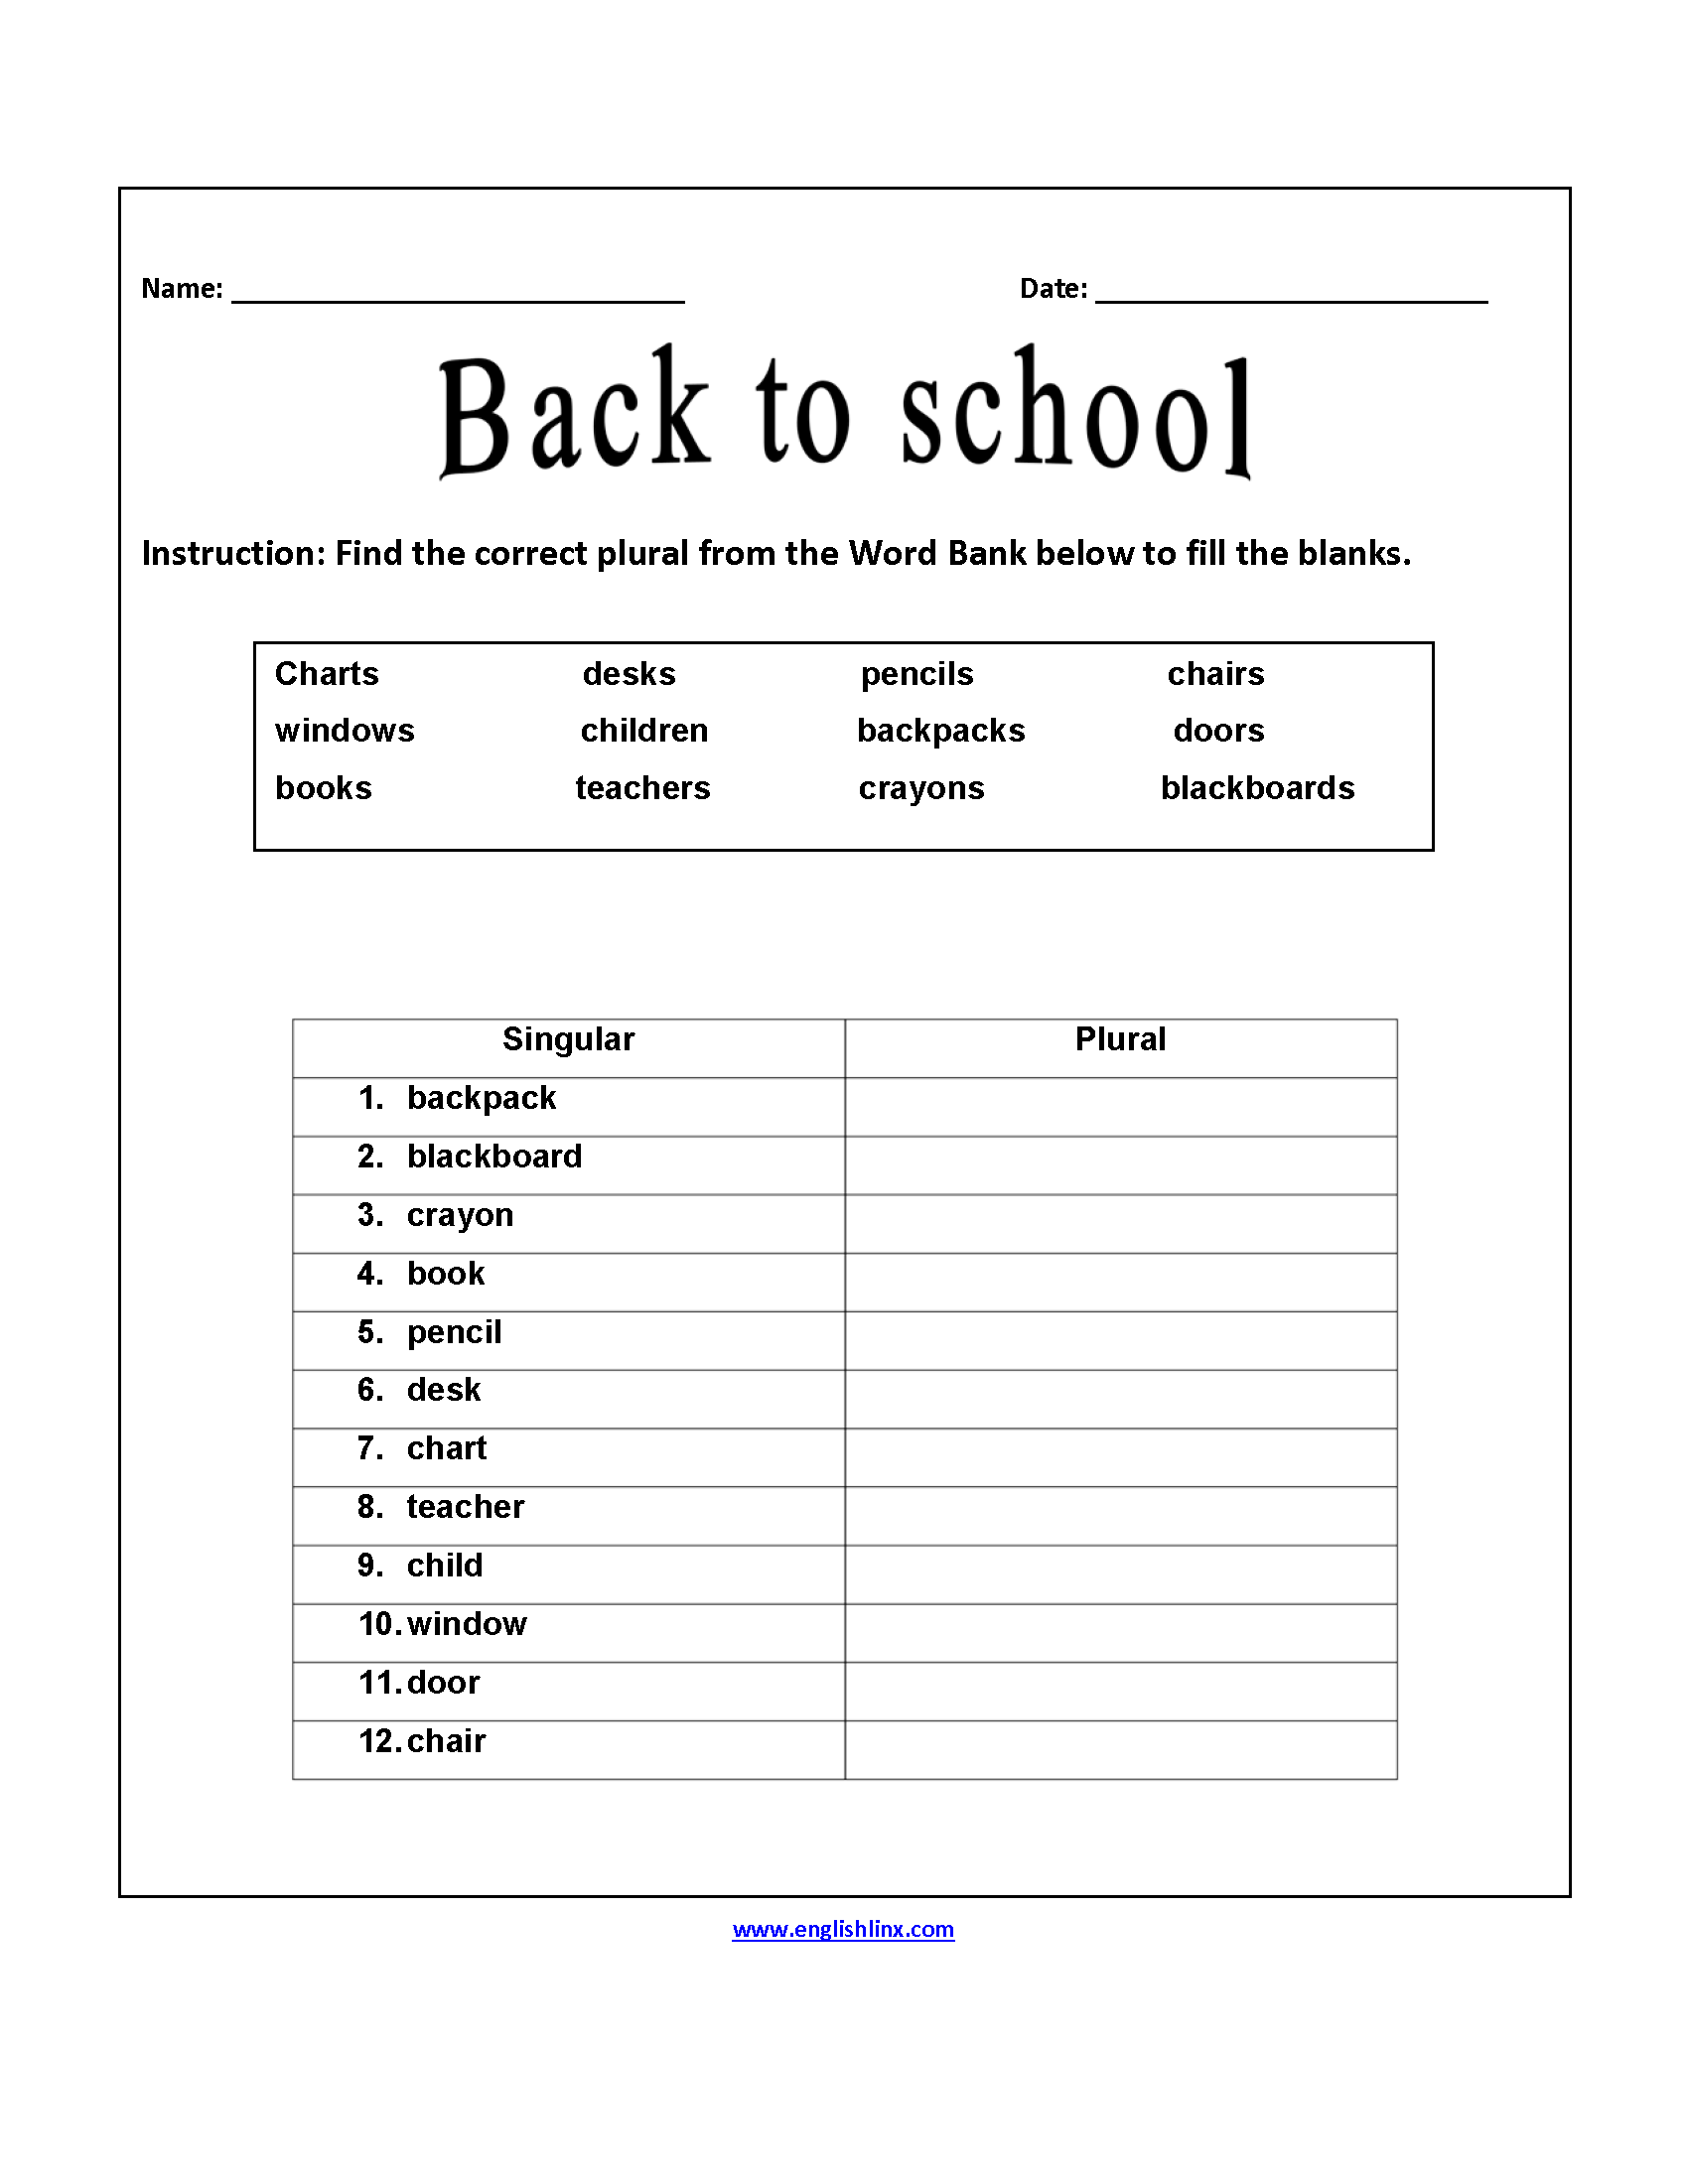 Back to School Worksheets | Correct Plurals Back to School ...